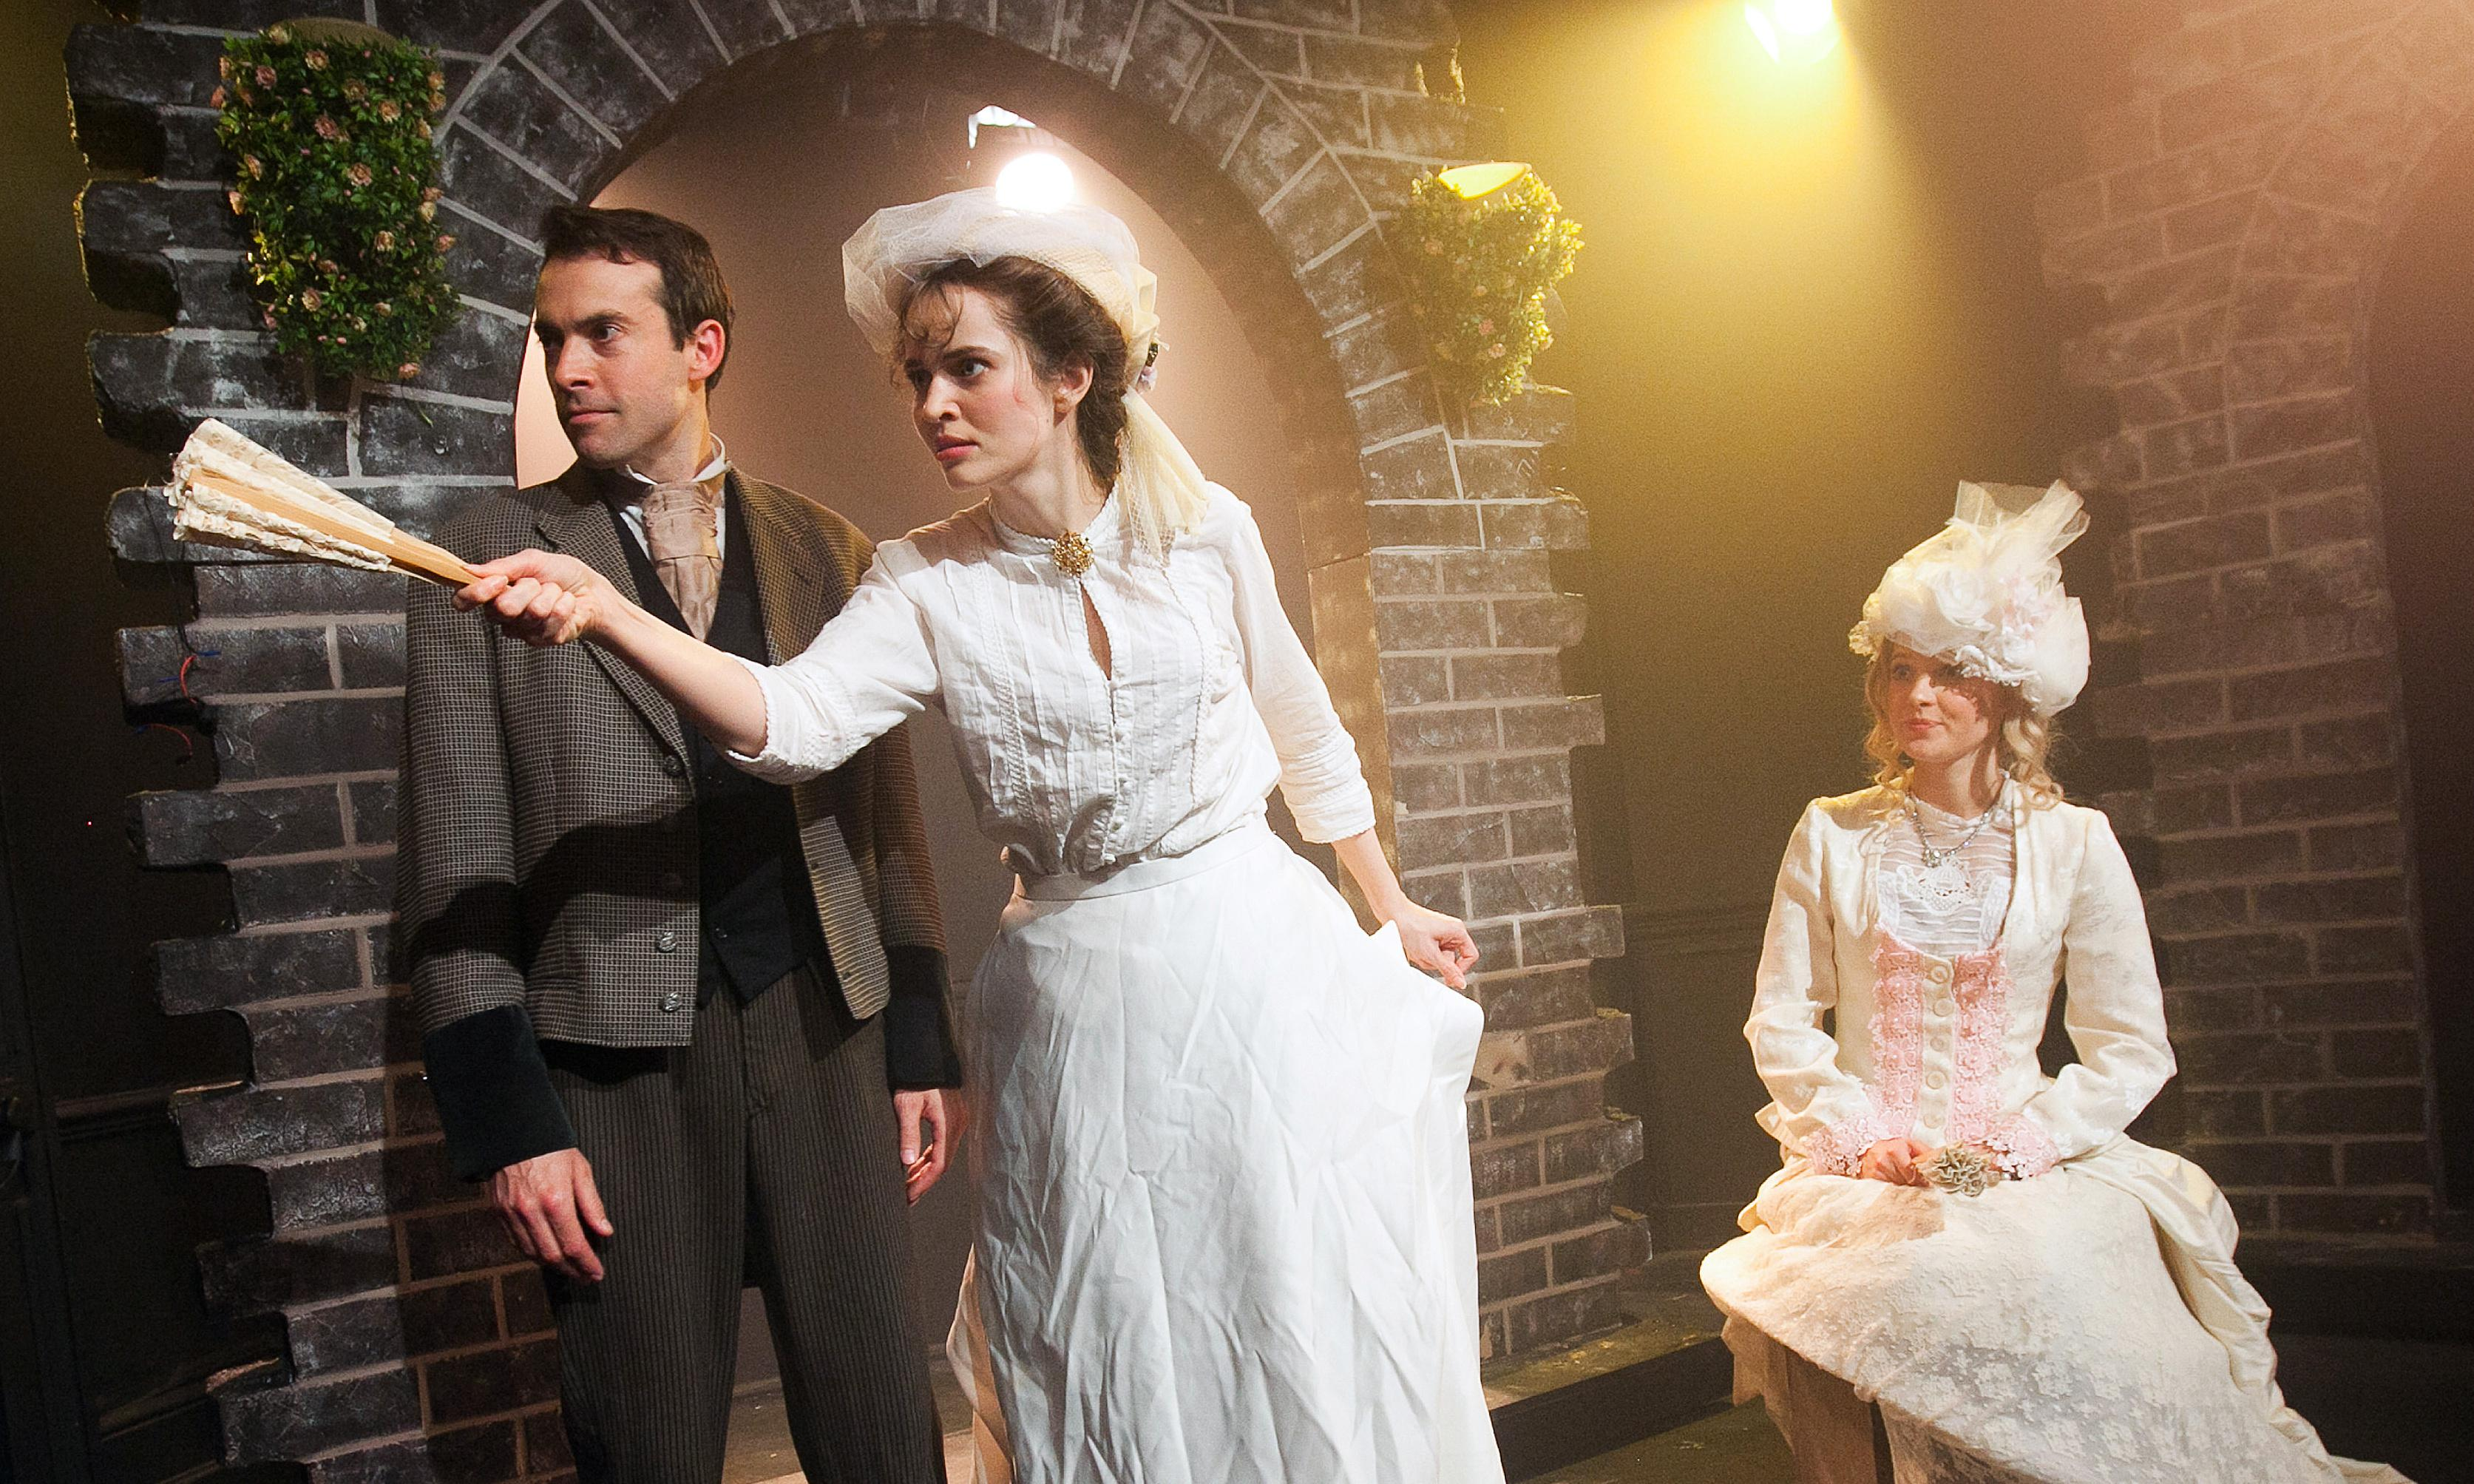 After Dark review – a deliciously dank vision of Victorian London